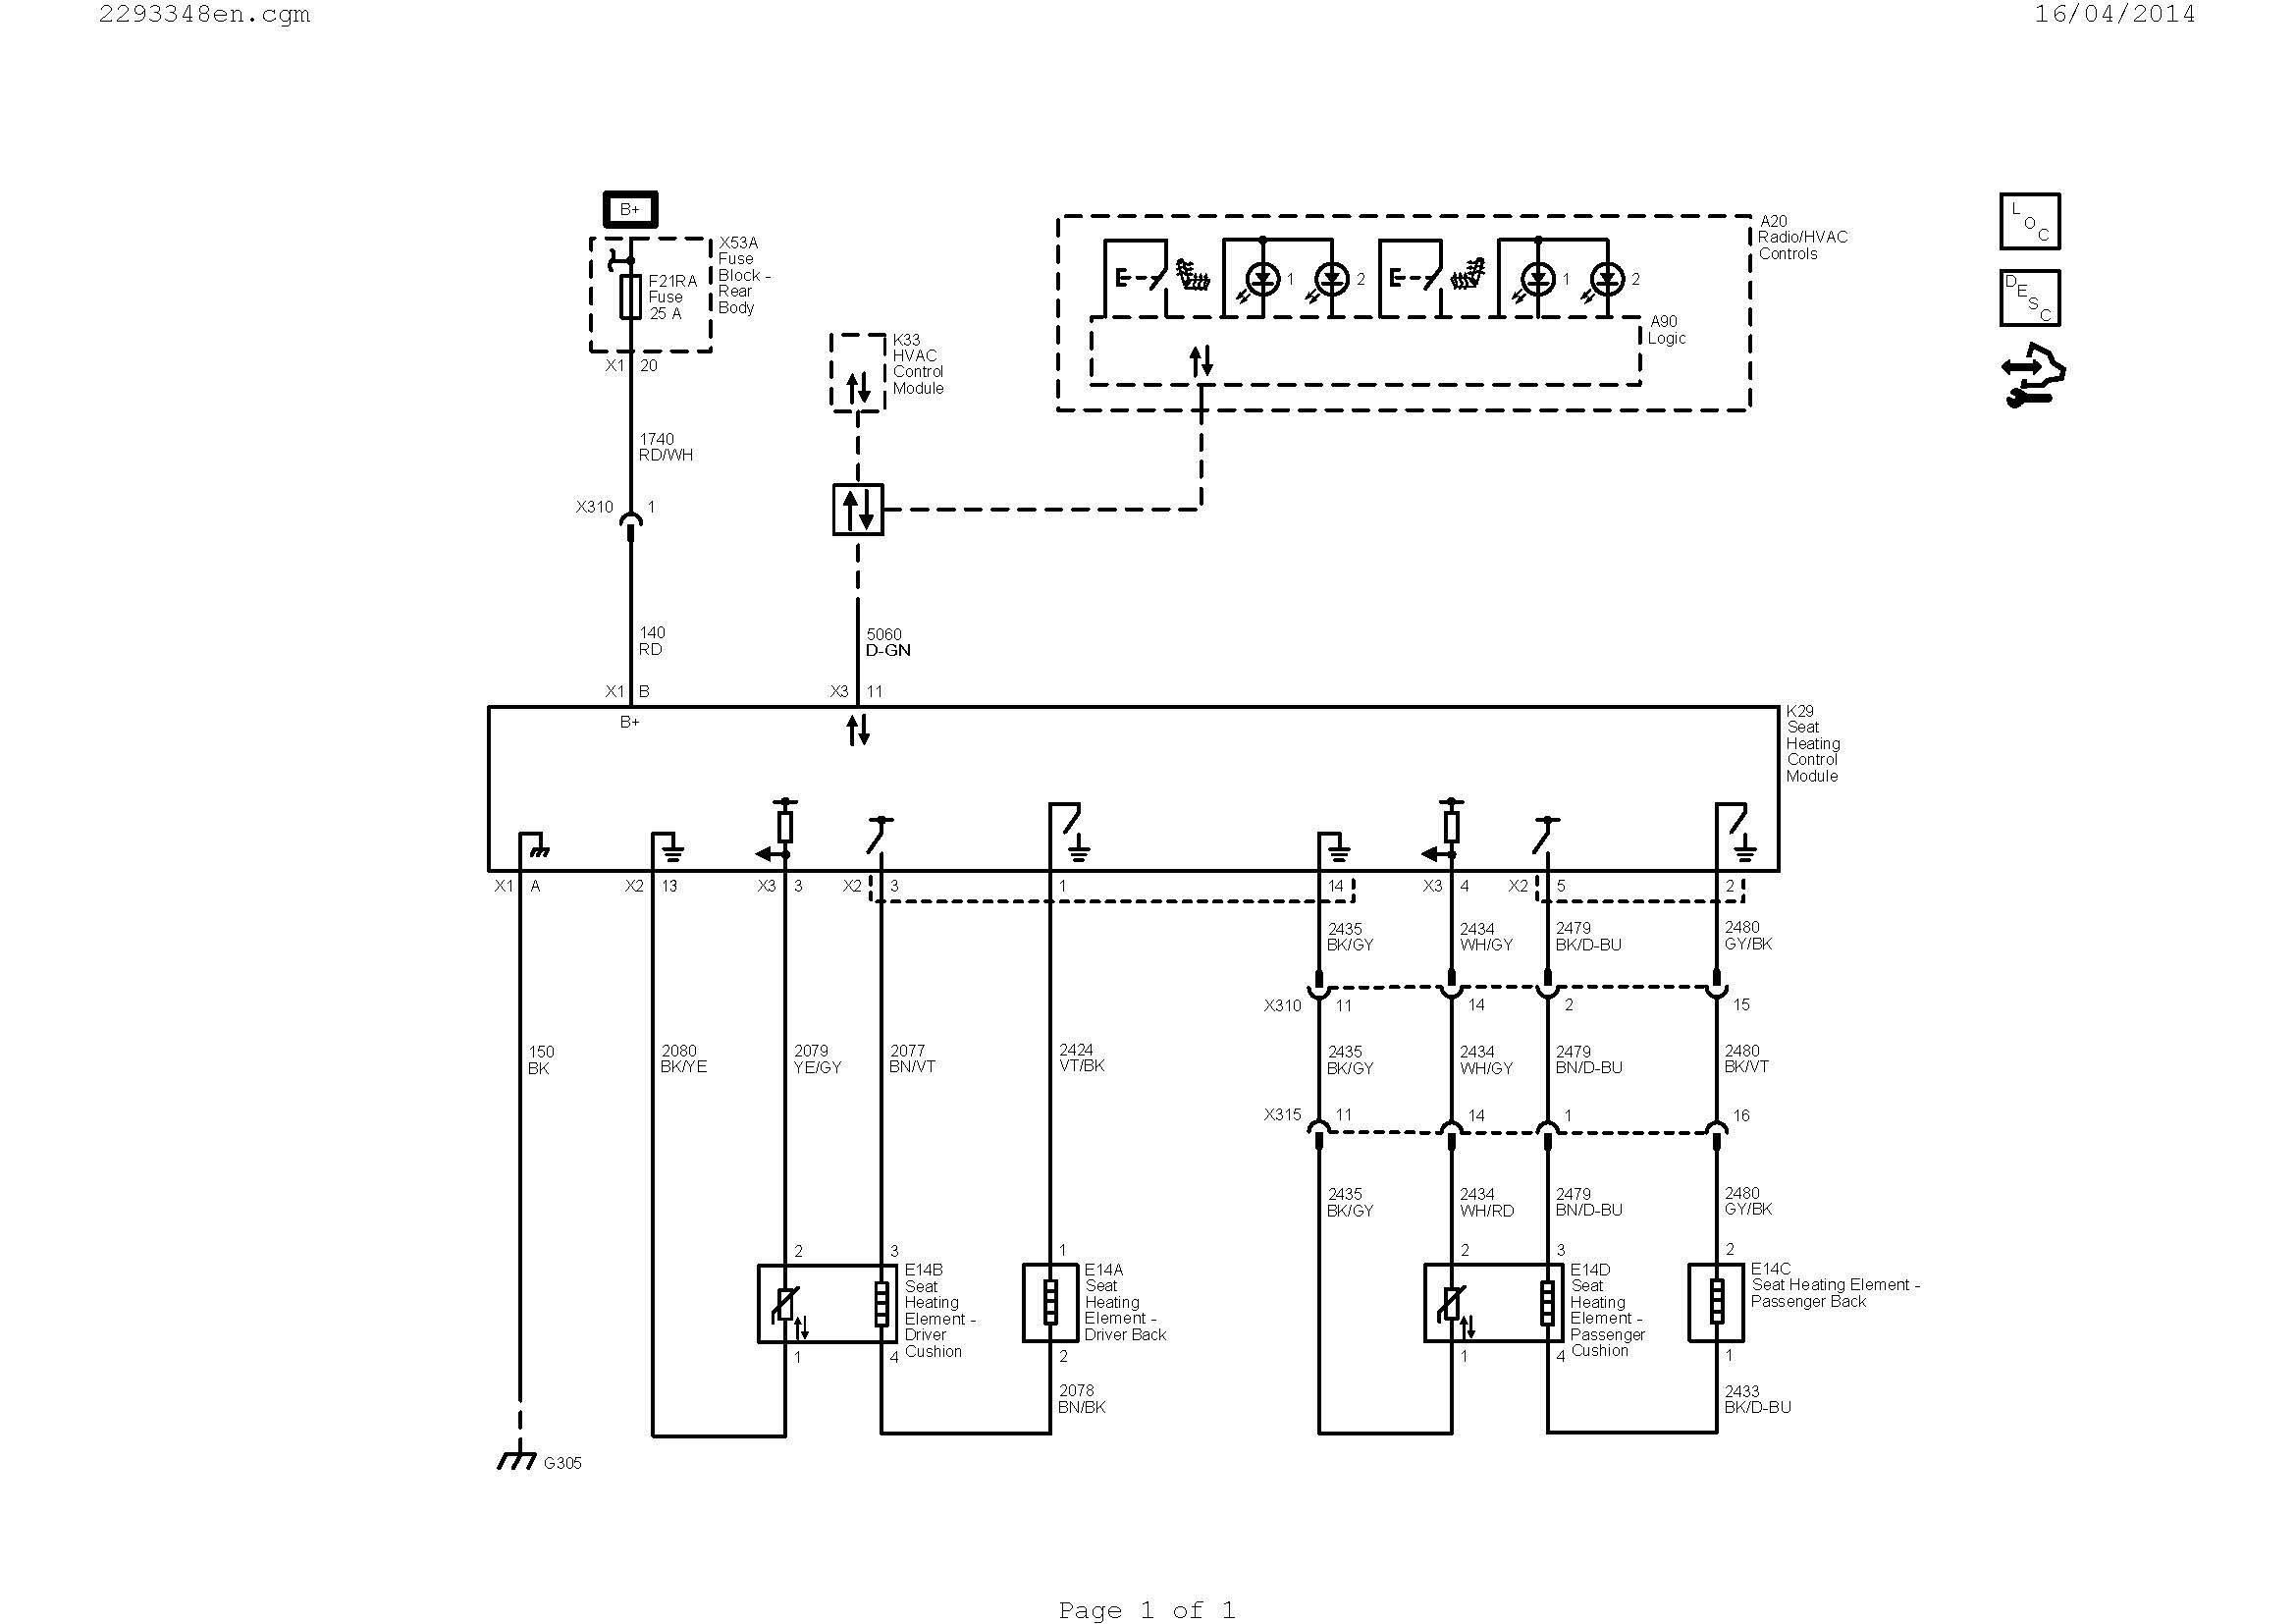 Air Conditioner thermostat Wiring Diagram - Nest Wireless thermostat Wiring Diagram Refrence Wiring Diagram Ac Valid Hvac Diagram Best Hvac Diagram 0d 16t